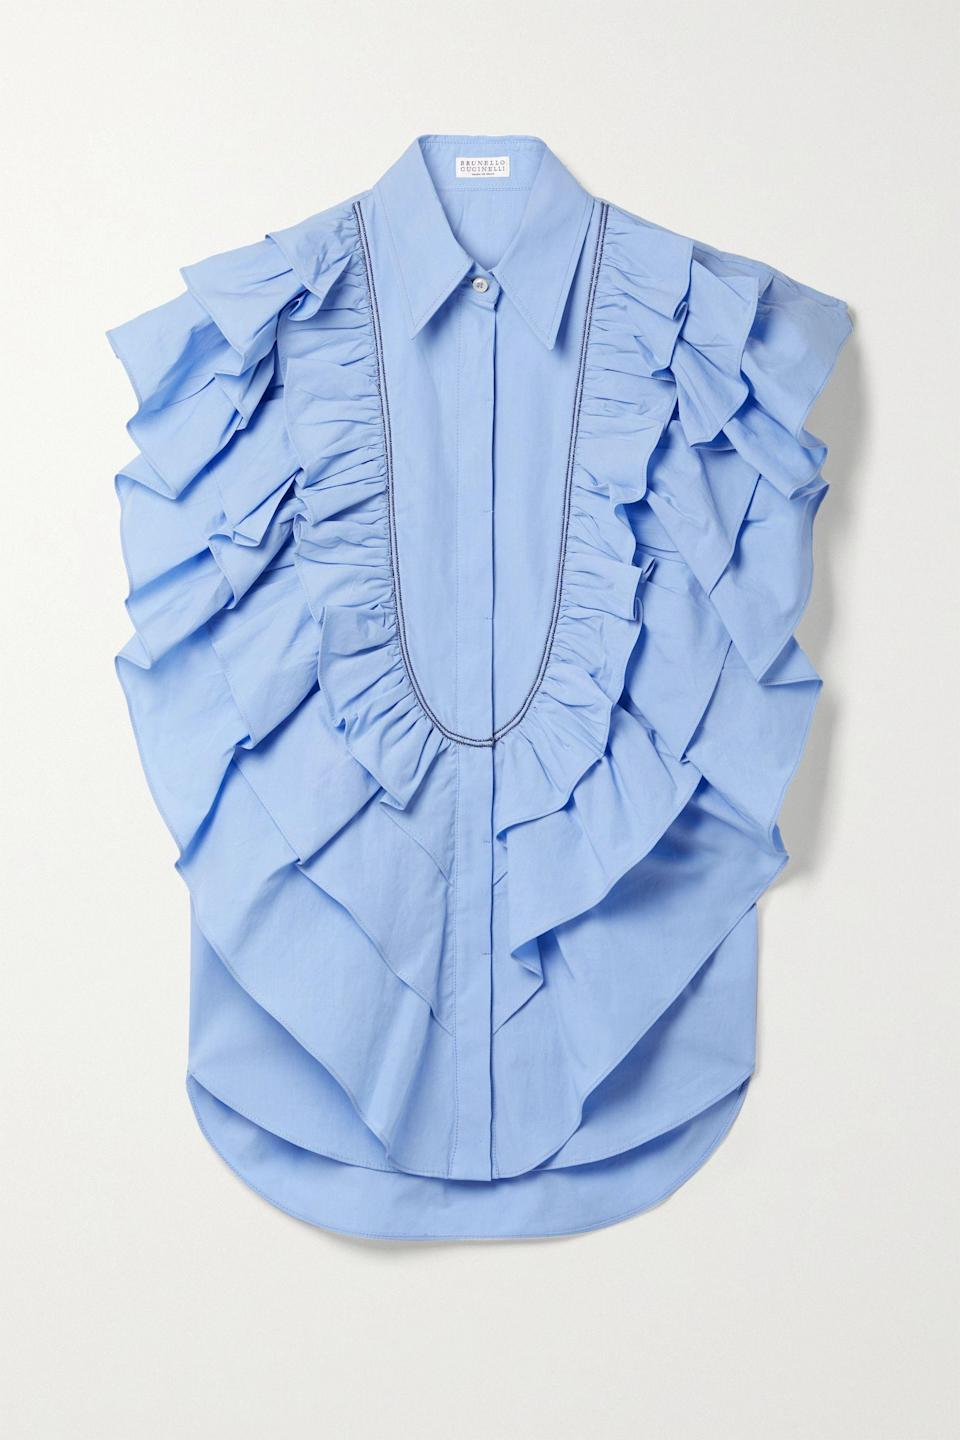 """<p><strong>Brunello Cucinelli</strong></p><p>net-a-porter.com</p><p><strong>$1695.00</strong></p><p><a href=""""https://go.redirectingat.com?id=74968X1596630&url=https%3A%2F%2Fwww.net-a-porter.com%2Fen-us%2Fshop%2Fproduct%2Fbrunello-cucinelli%2Fbead-embellished-ruffled-cotton-poplin-top%2F1319546&sref=https%3A%2F%2Fwww.townandcountrymag.com%2Fstyle%2Fg35967684%2Fwhat-to-wear-to-get-vaccinated%2F"""" rel=""""nofollow noopener"""" target=""""_blank"""" data-ylk=""""slk:Shop Now"""" class=""""link rapid-noclick-resp"""">Shop Now</a></p><p>Another statement top that can be easily paired with a classic pair of cigarette let pants, spiffy shoes, and deliver a look without oodles of effort.</p>"""